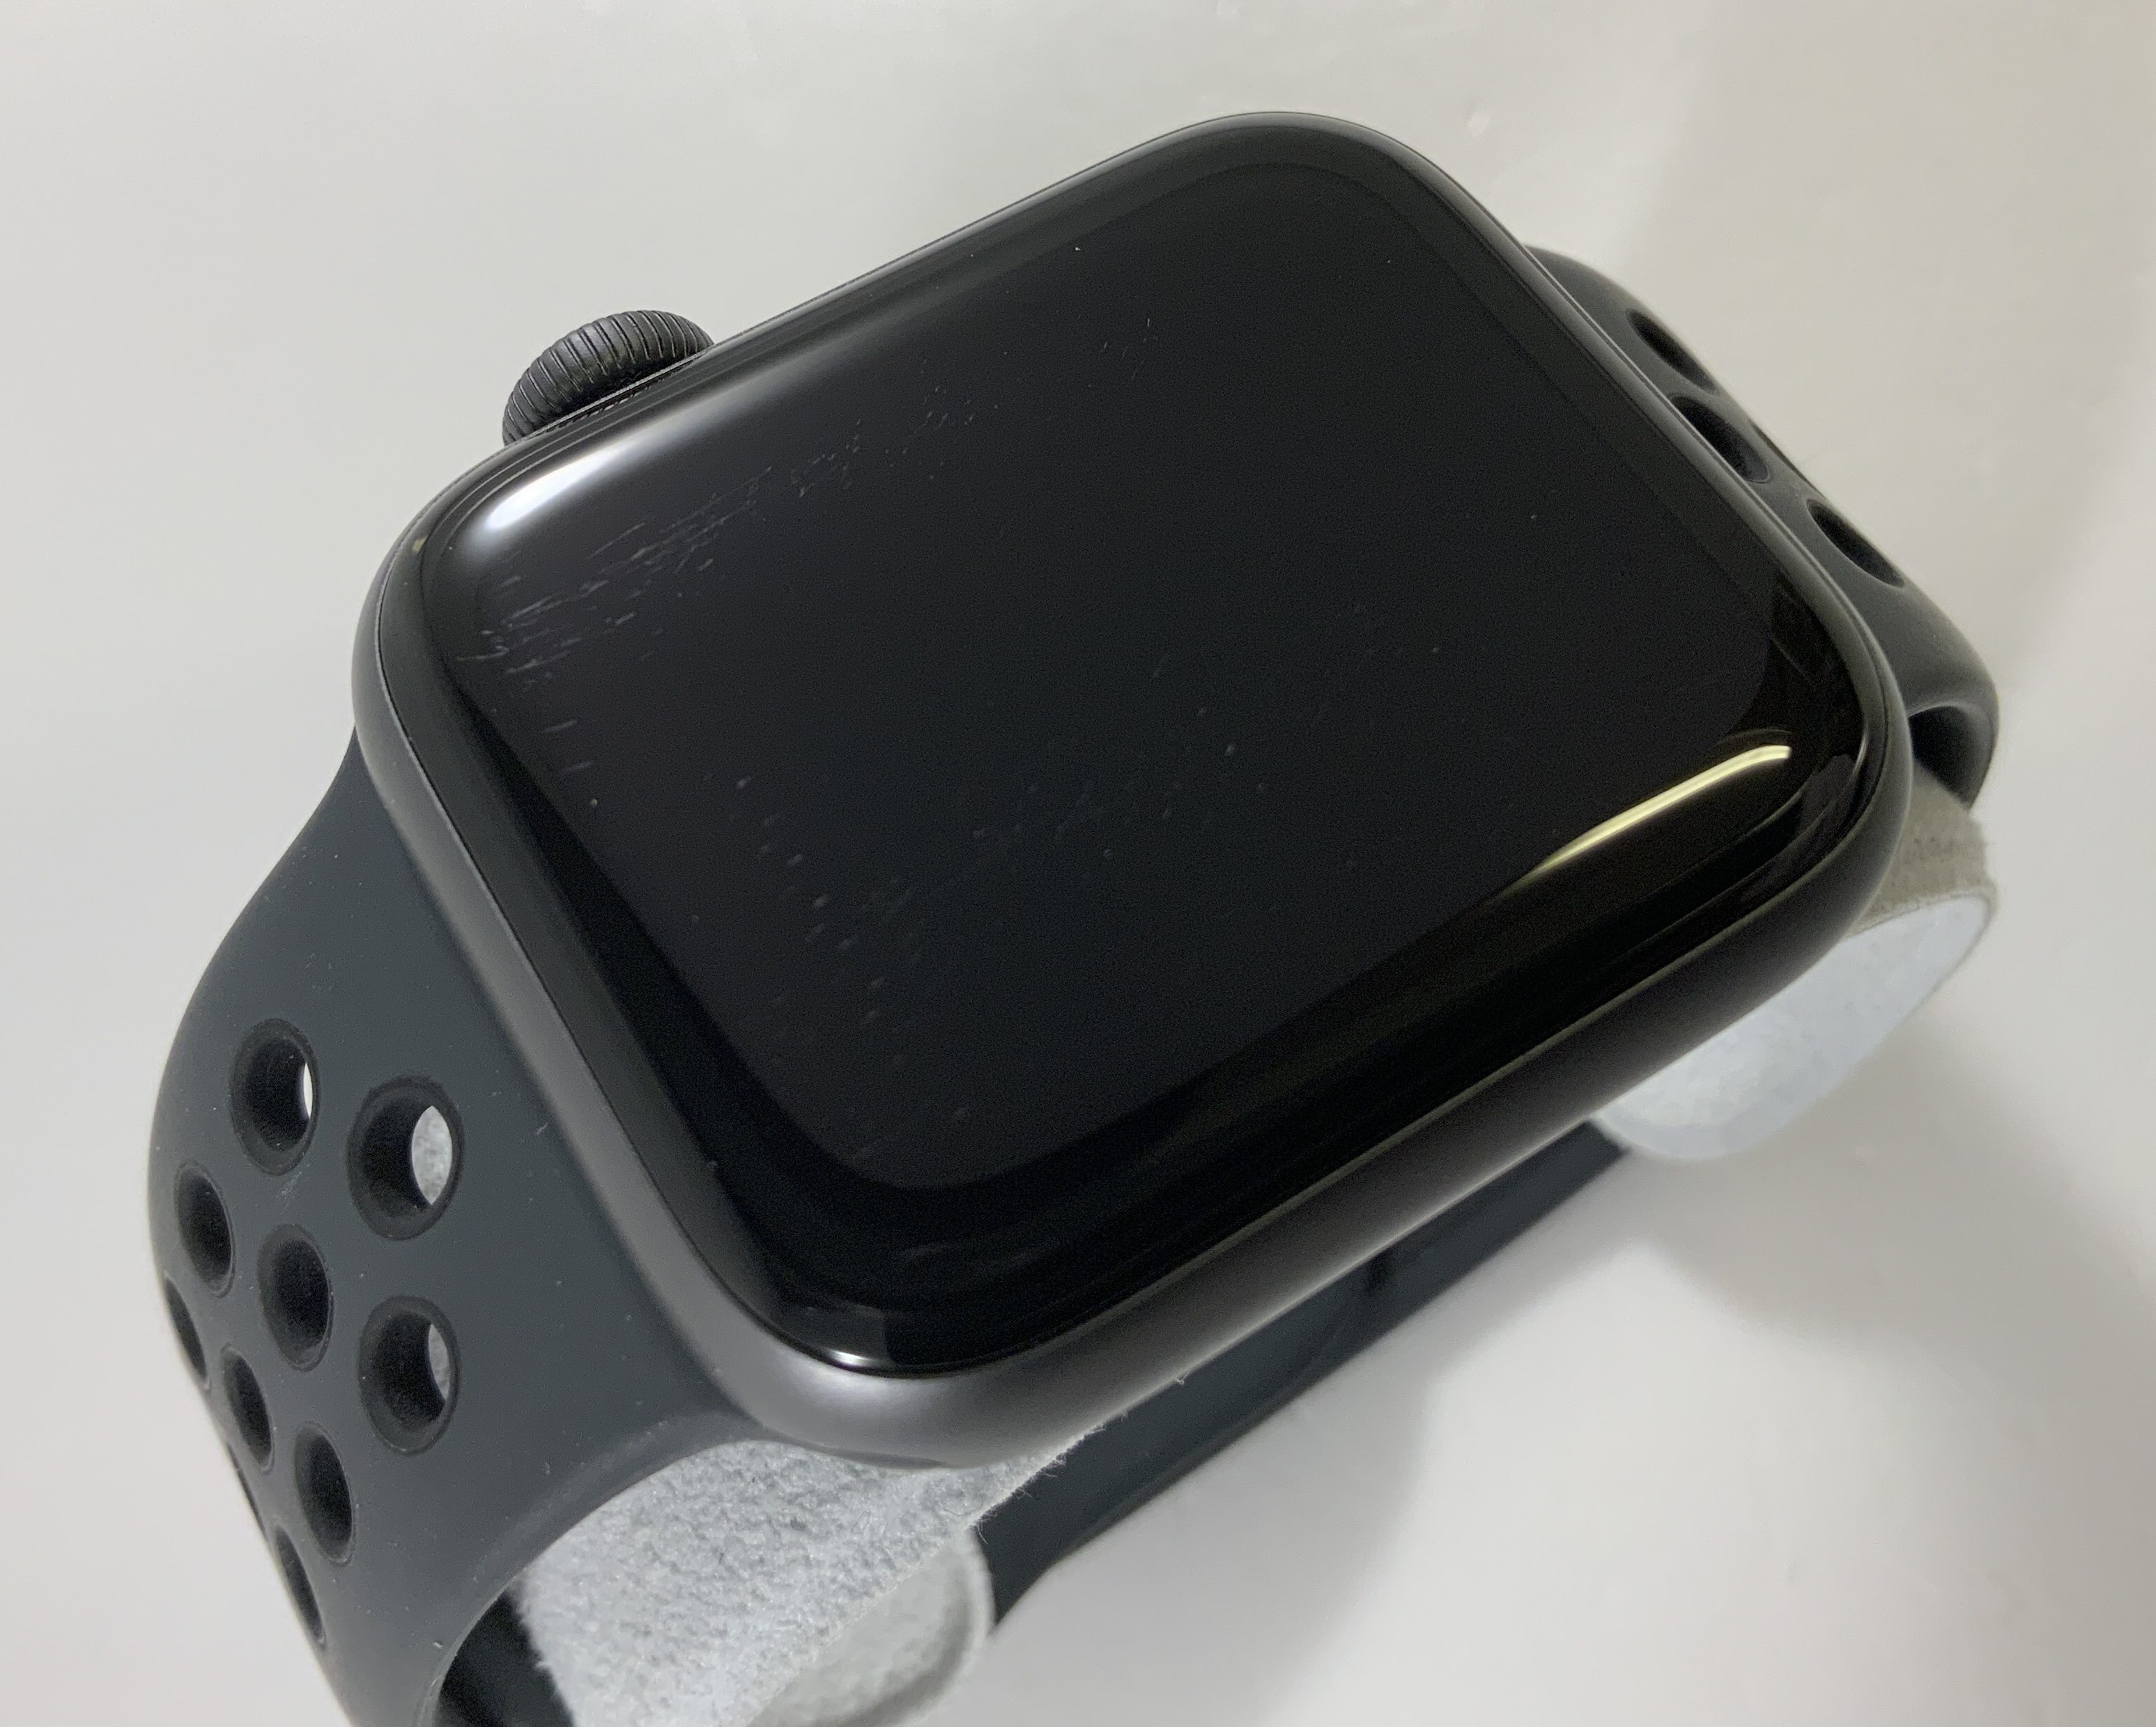 Watch Series 4 Aluminum Cellular (40mm), Space Gray, Anthracite/Black Nike Sport Band, Afbeelding 2